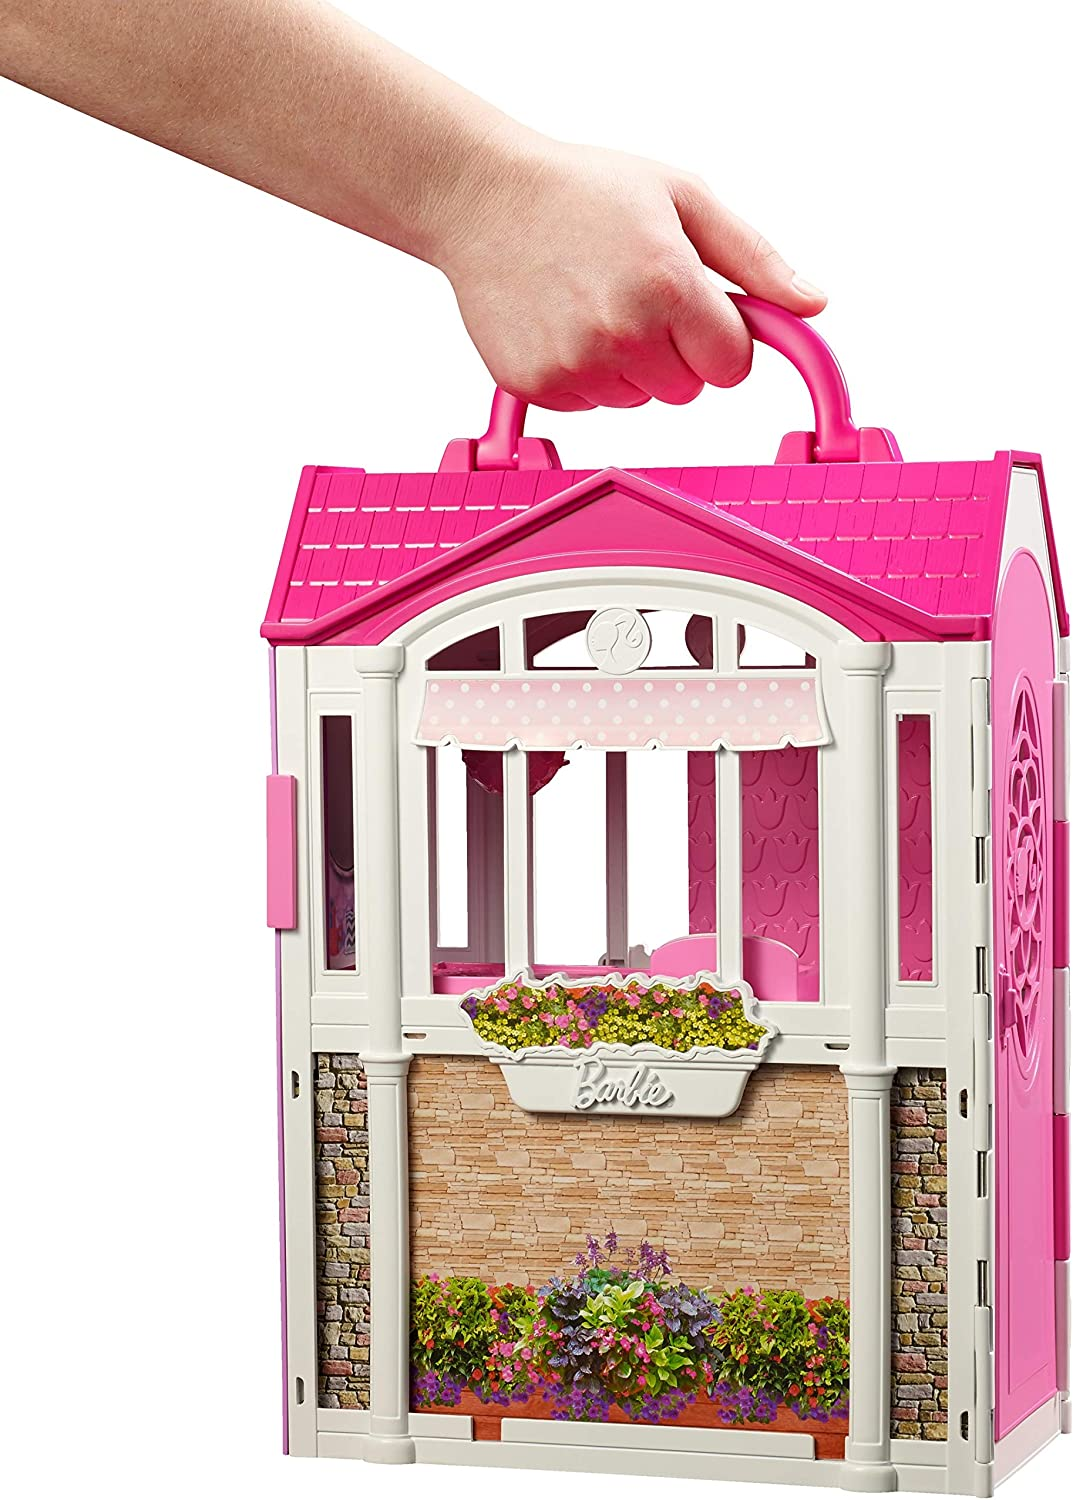 ?Barbie Glam Getaway Portable Dollhouse, 1 Story with Furniture, Accessories and Carrying Handle, for 3 to 7 Year Olds [Amazon Exclusive]